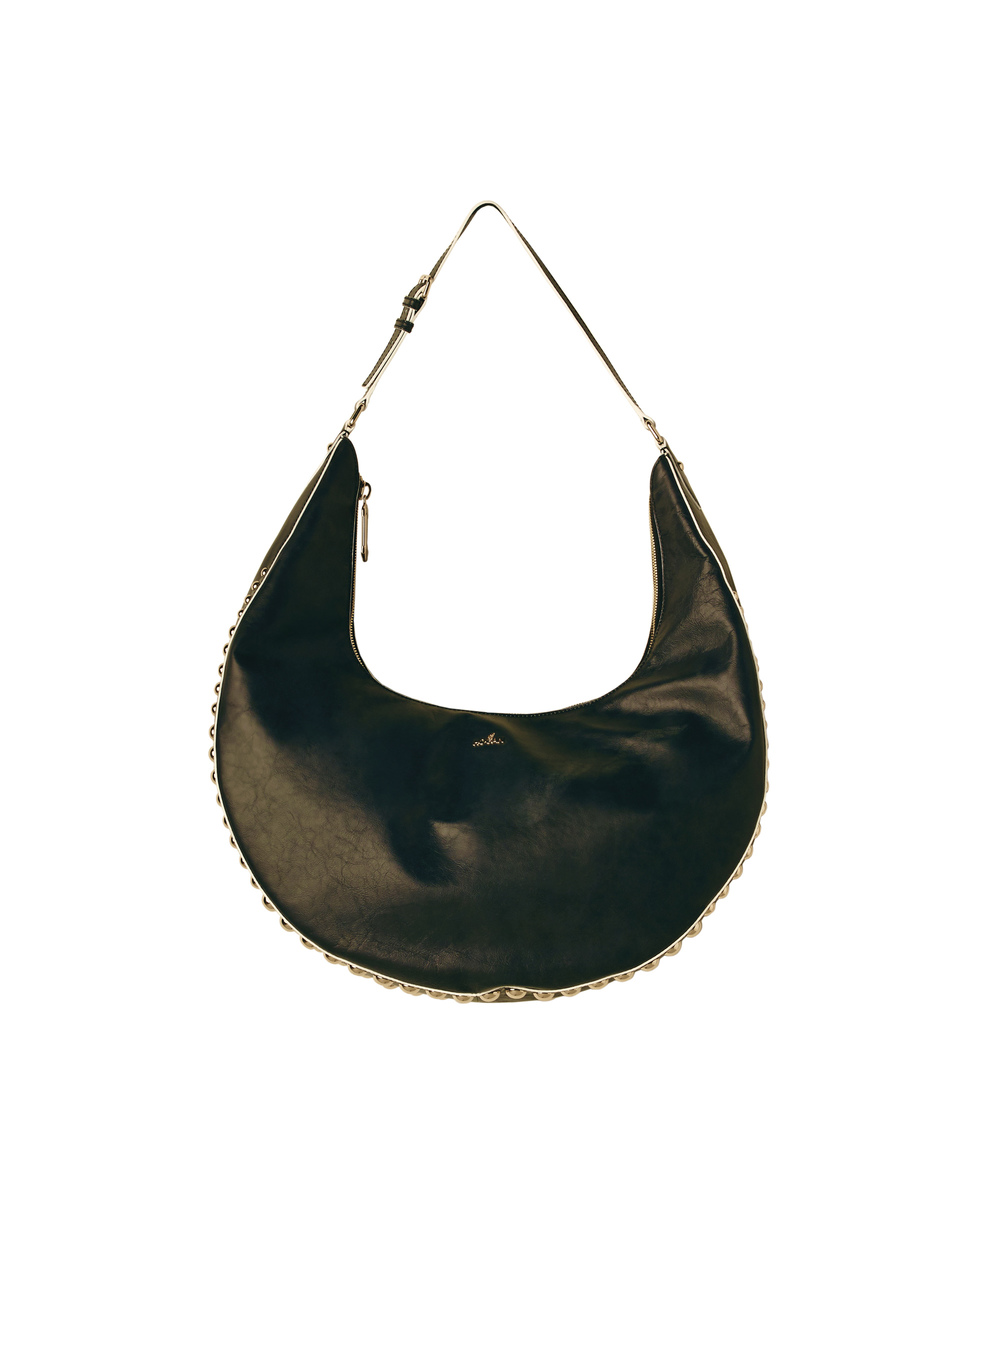 23-hobo bag in black leather with studs.jpg